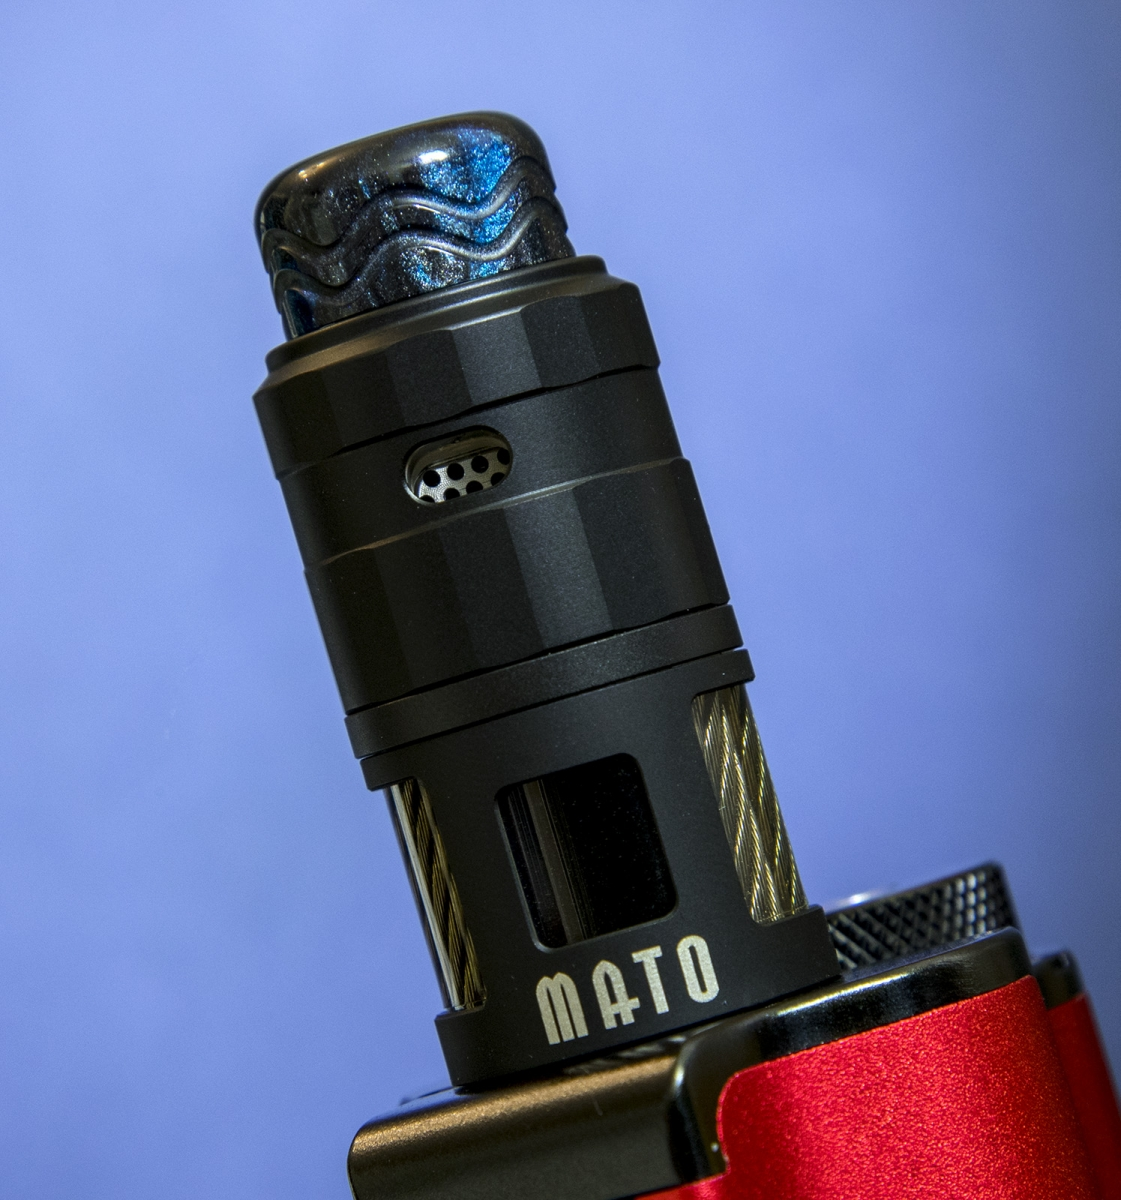 Vandy Vape MATO RDTA close up